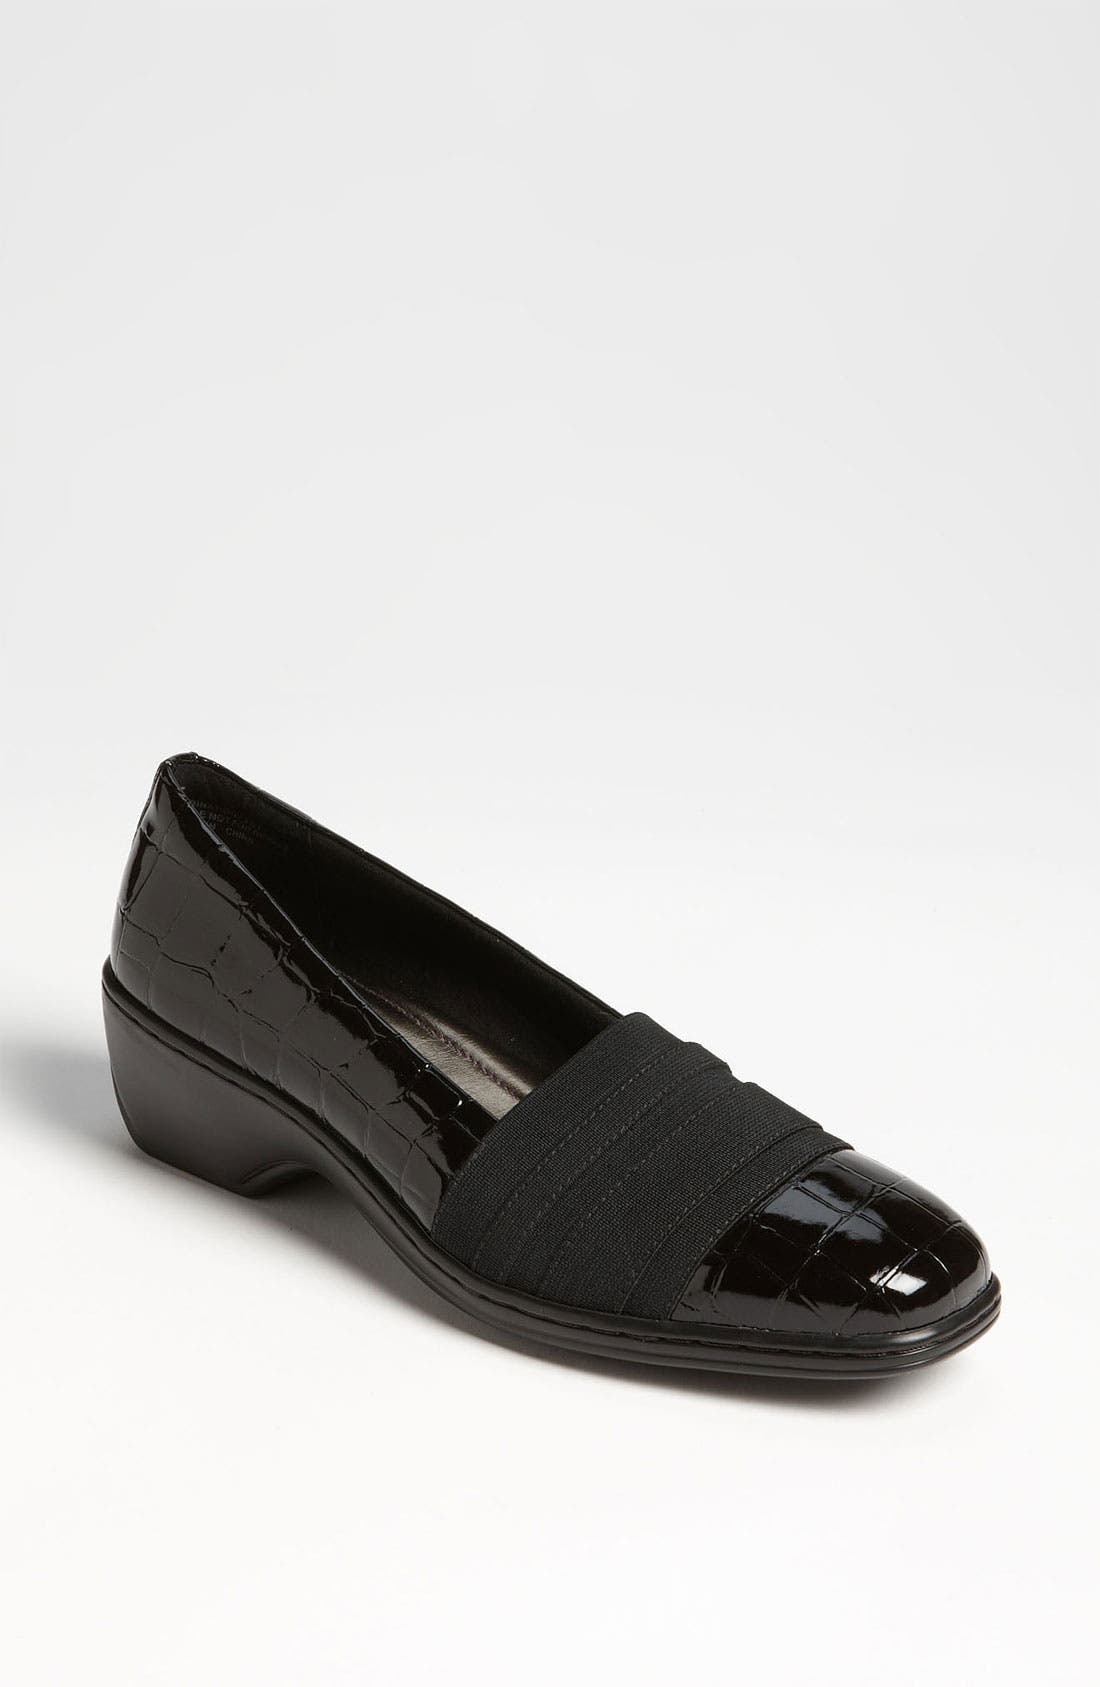 Main Image - Aravon 'Kasey' Slip-On